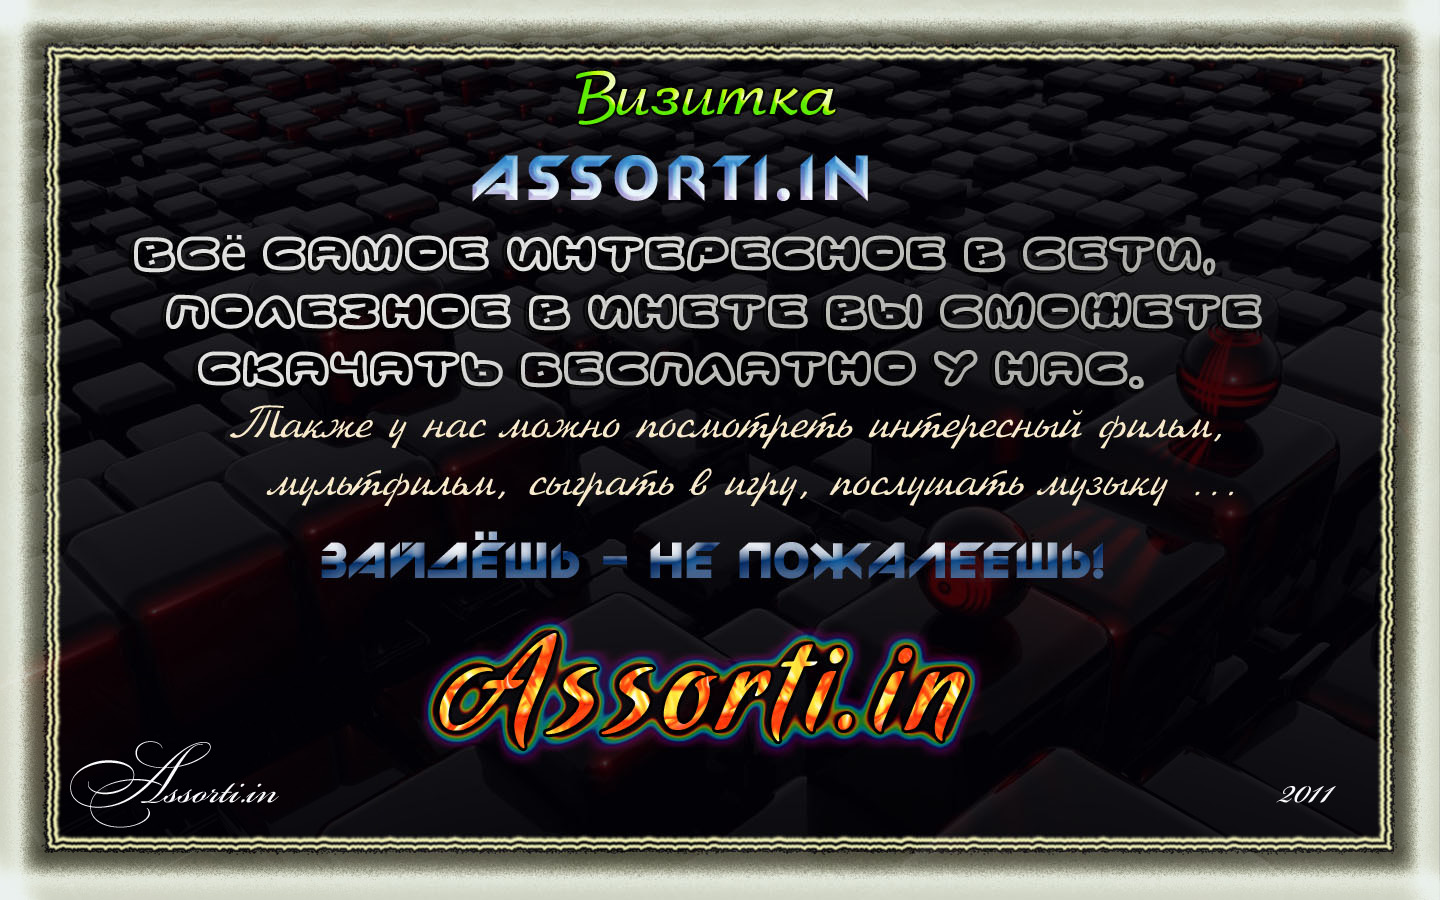 assorti.in/images/Raznoe/nod_update.gif